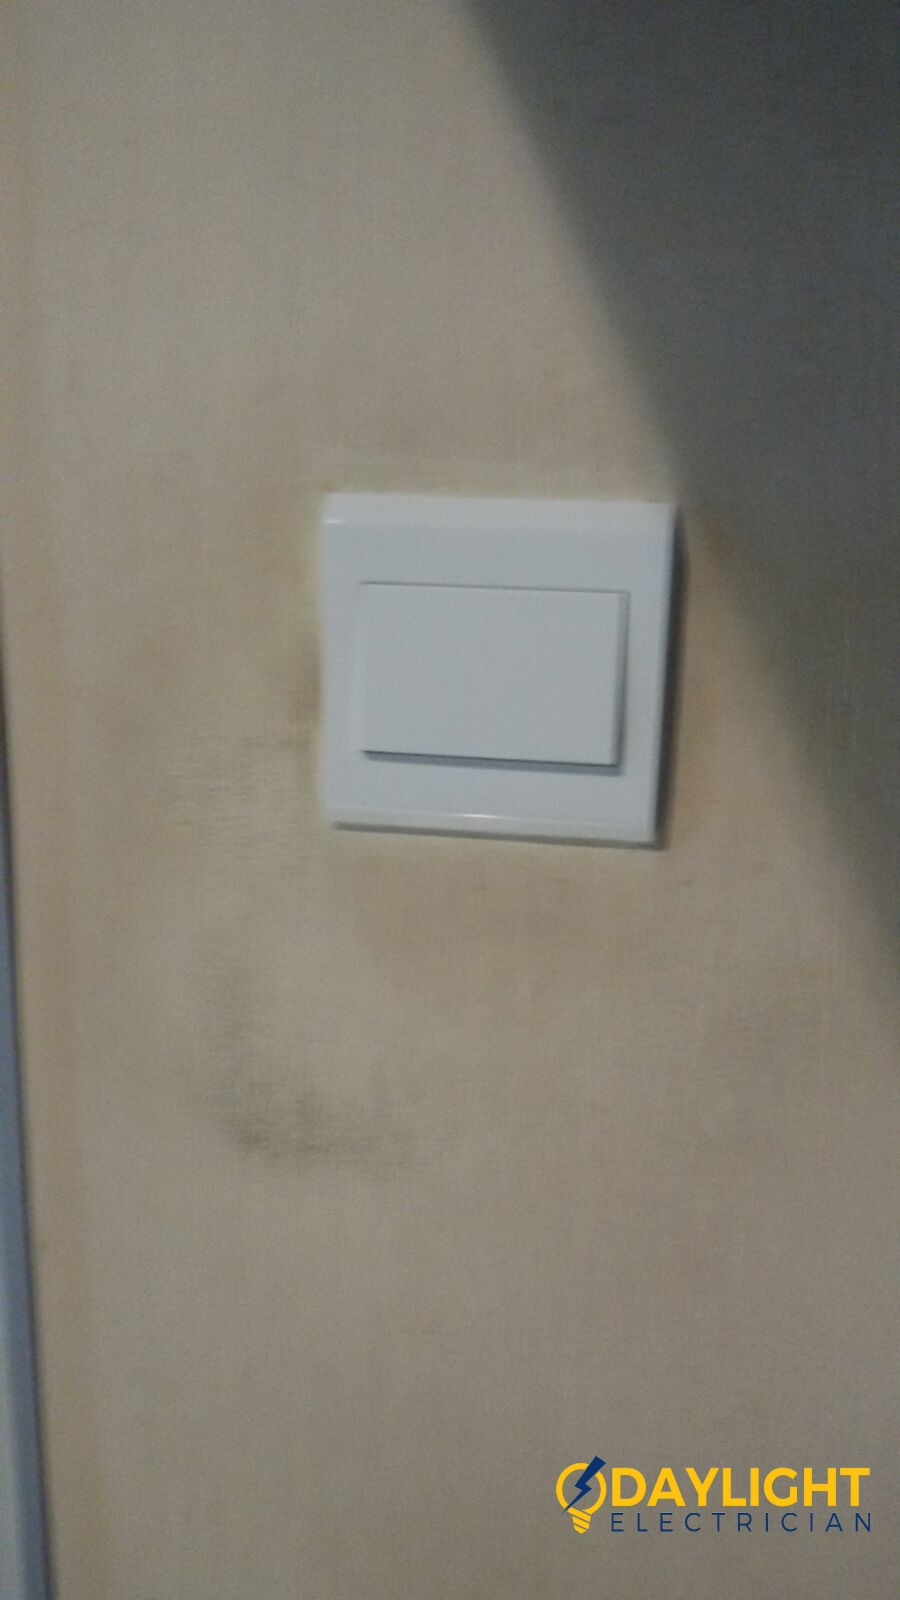 replace-light-switch-electrician-singapore-bedok-hdb-6